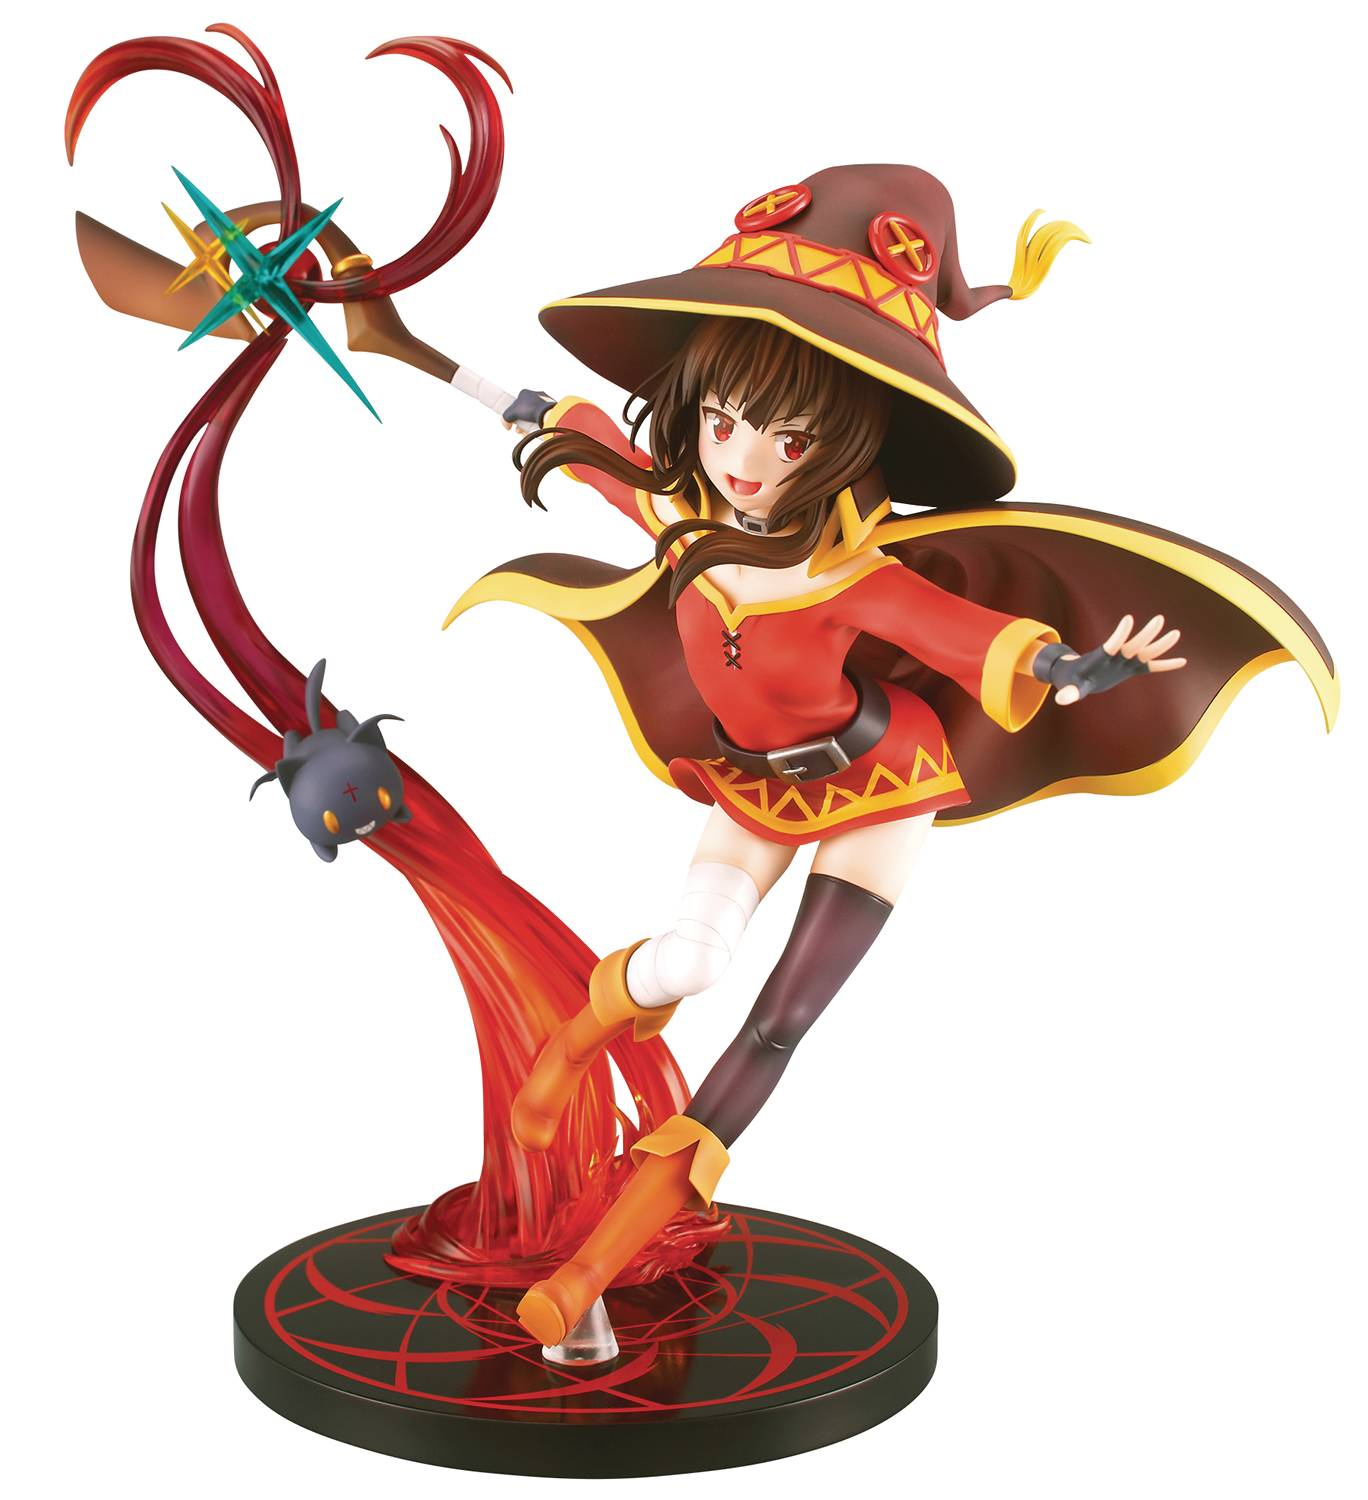 KONOSUBA MEGUMIN 1/7 PVC FIG EXPLOSION MAGIC VER